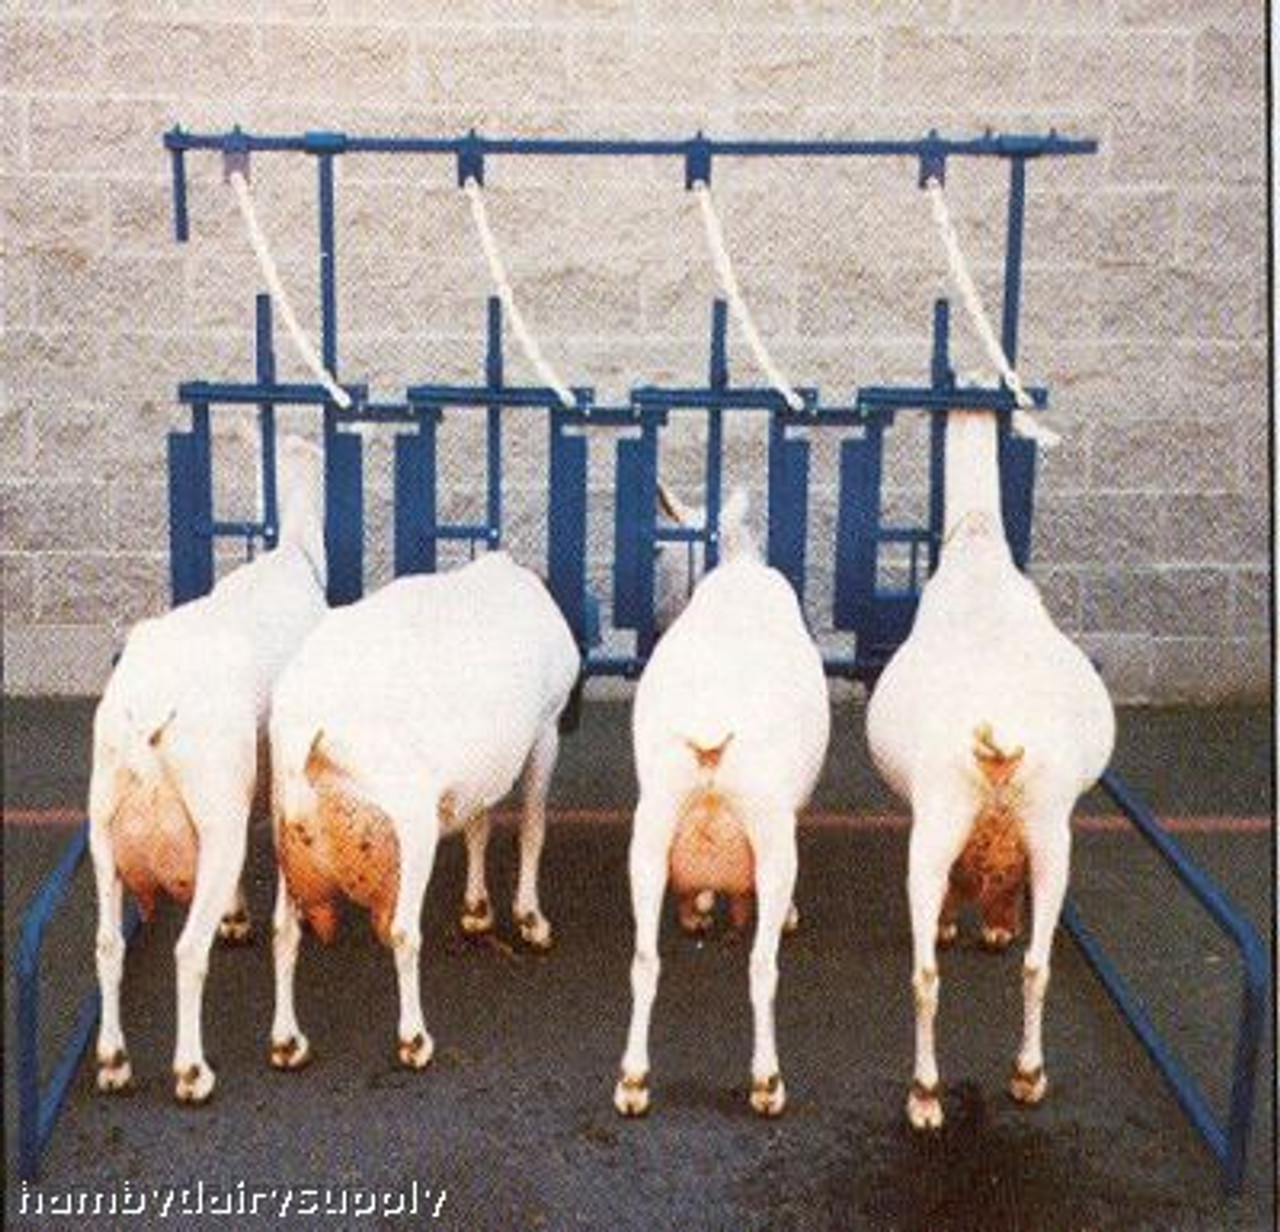 4 Stanchion Assembly for goats / sheep - Self Standing